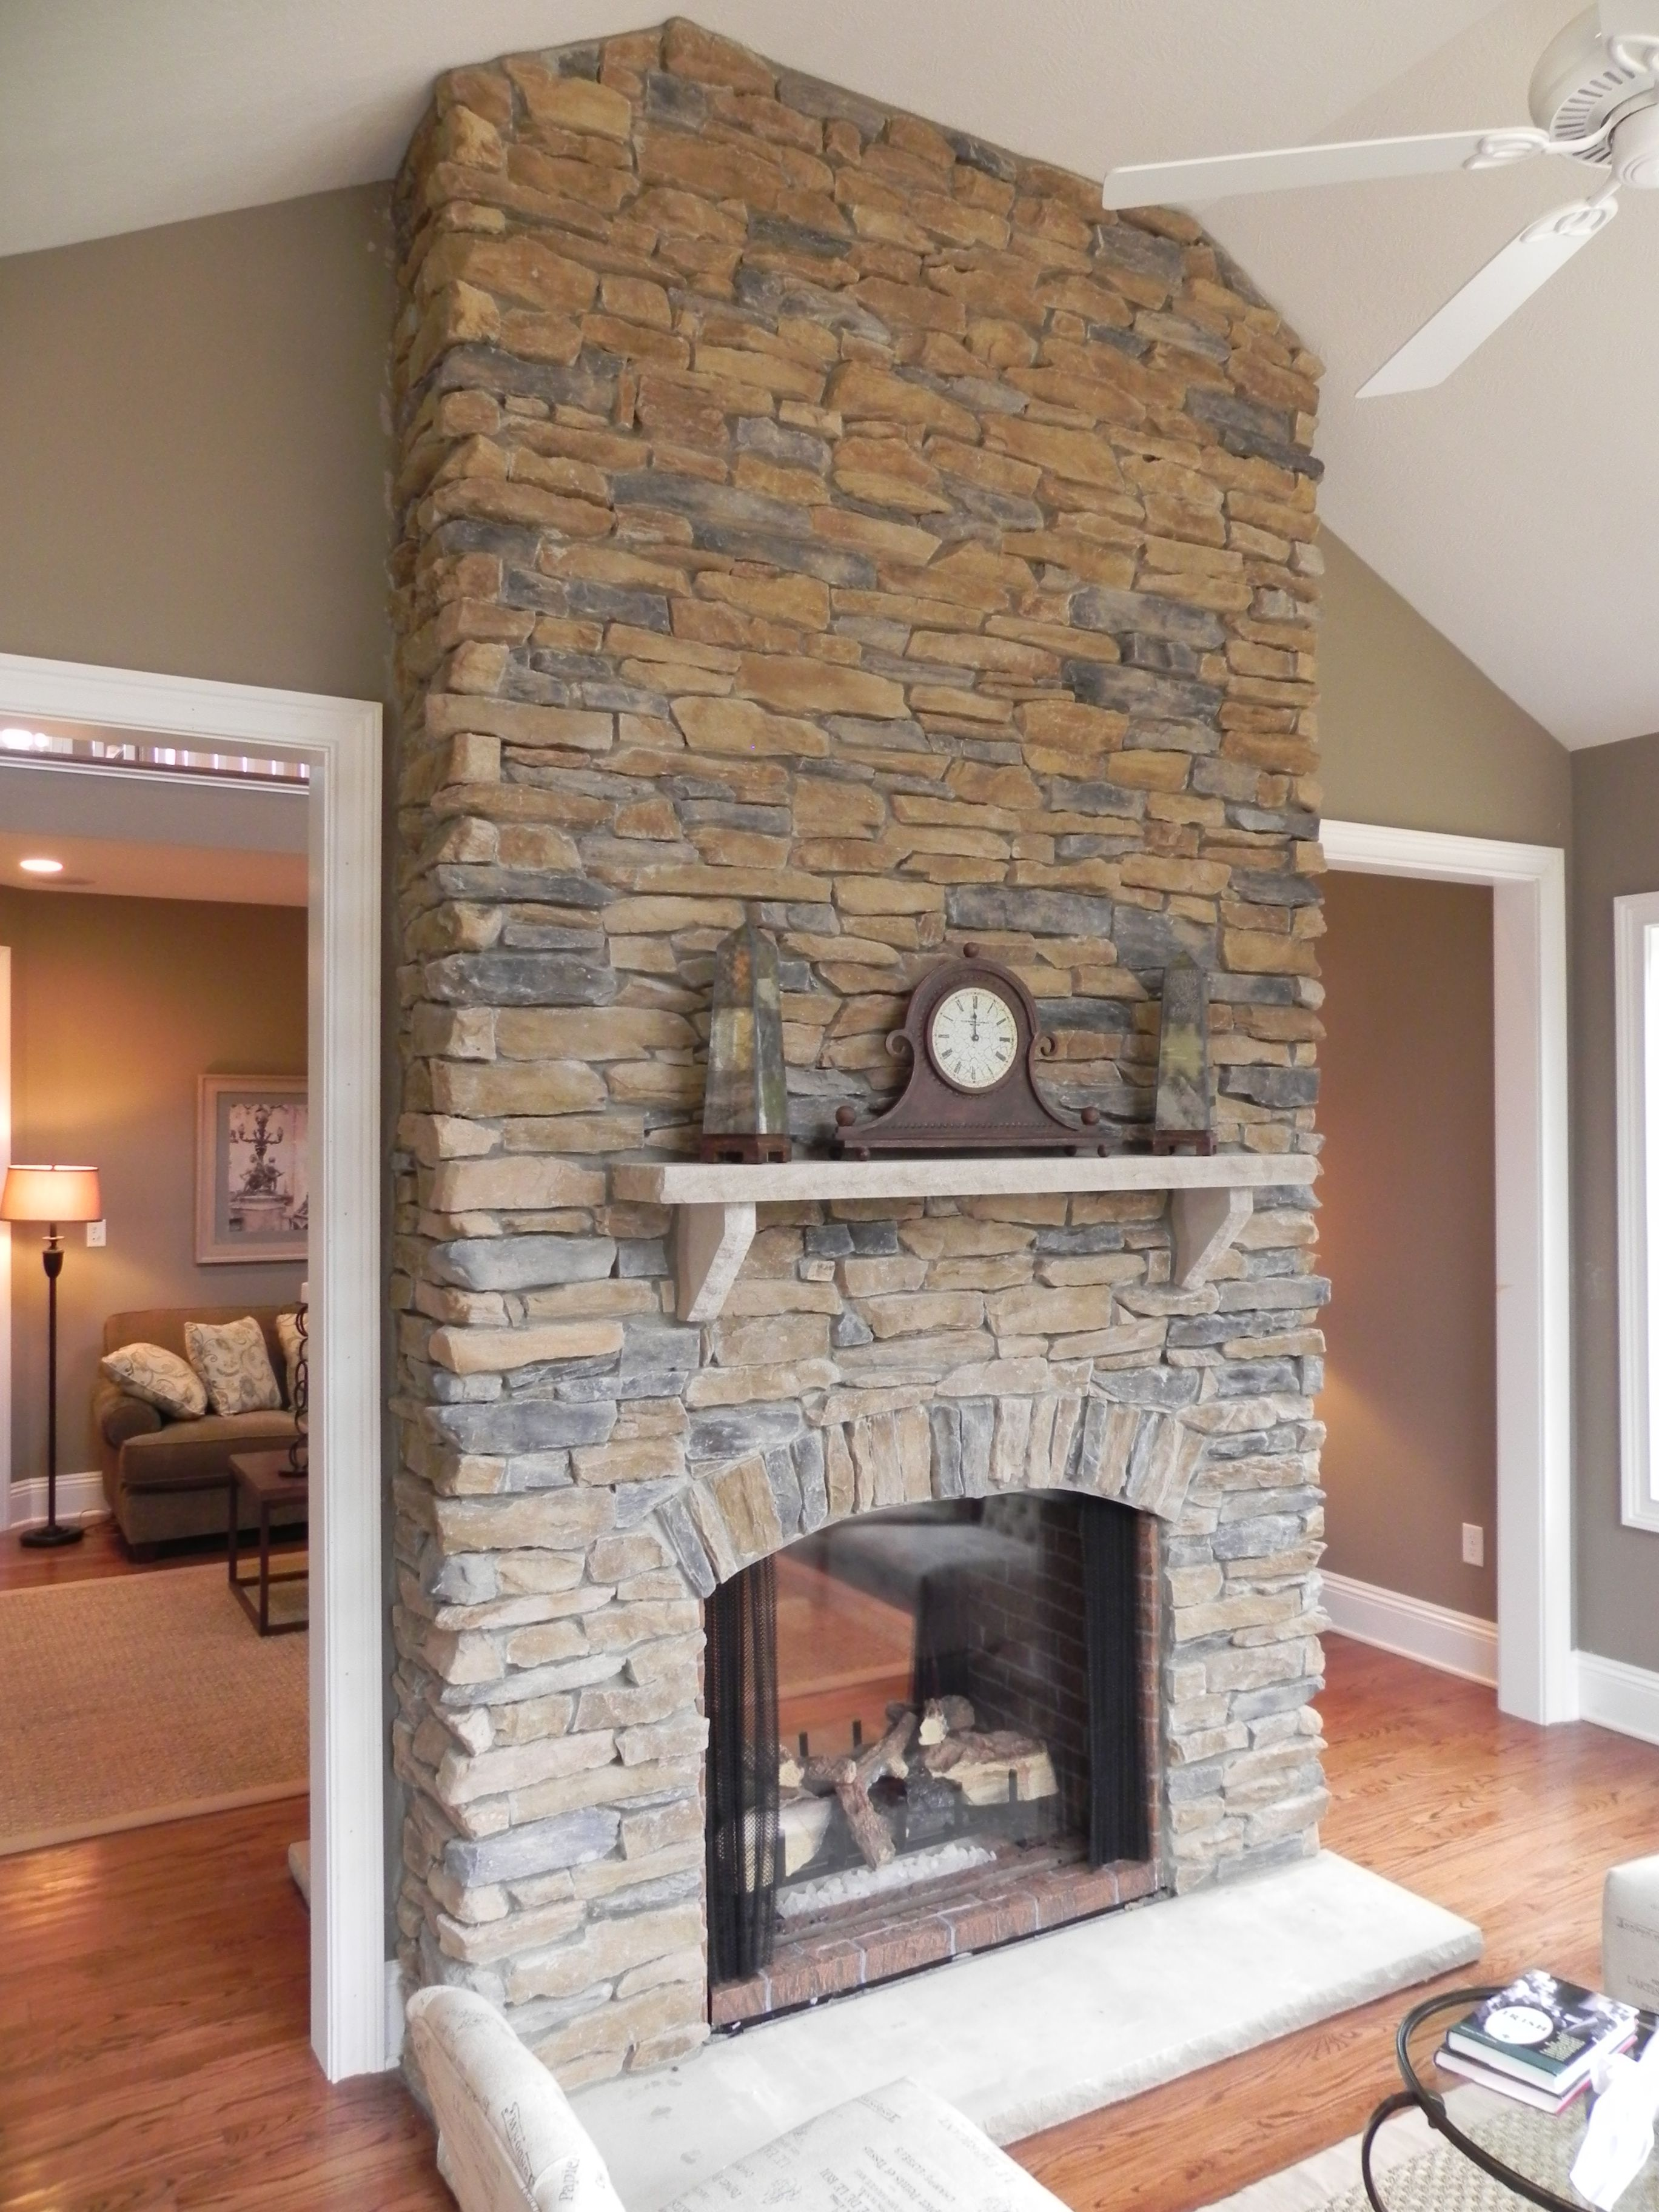 Floor To Ceiling Stone Fireplace Divides Rooms Maybe In